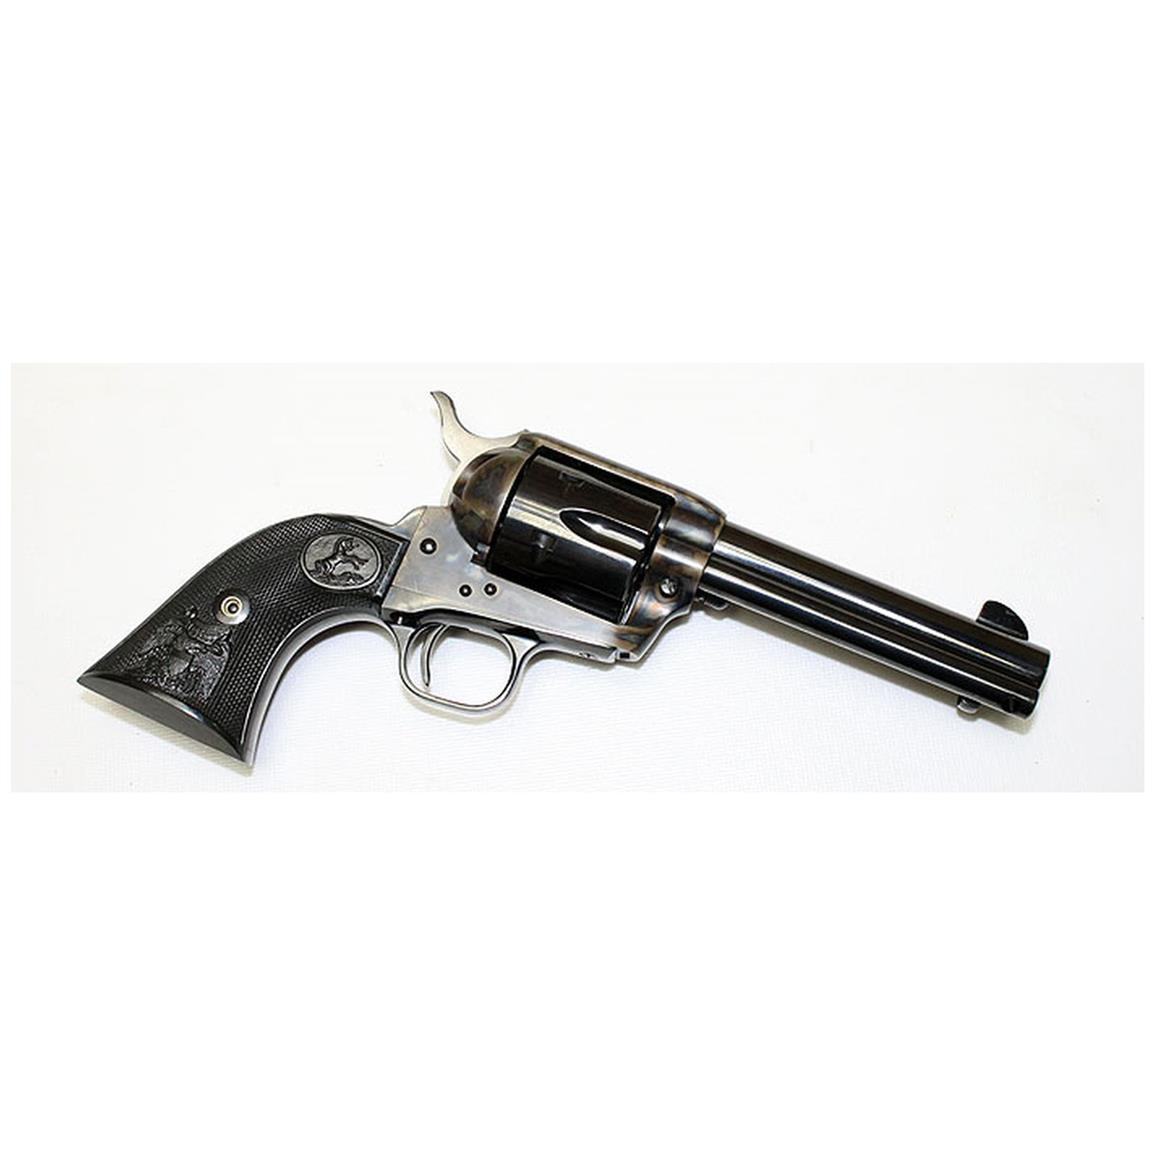 "Colt Single Action Army, Revolver, .45 Colt,  P1840, 98289000901, 4.75"" Barrel, 6-round"